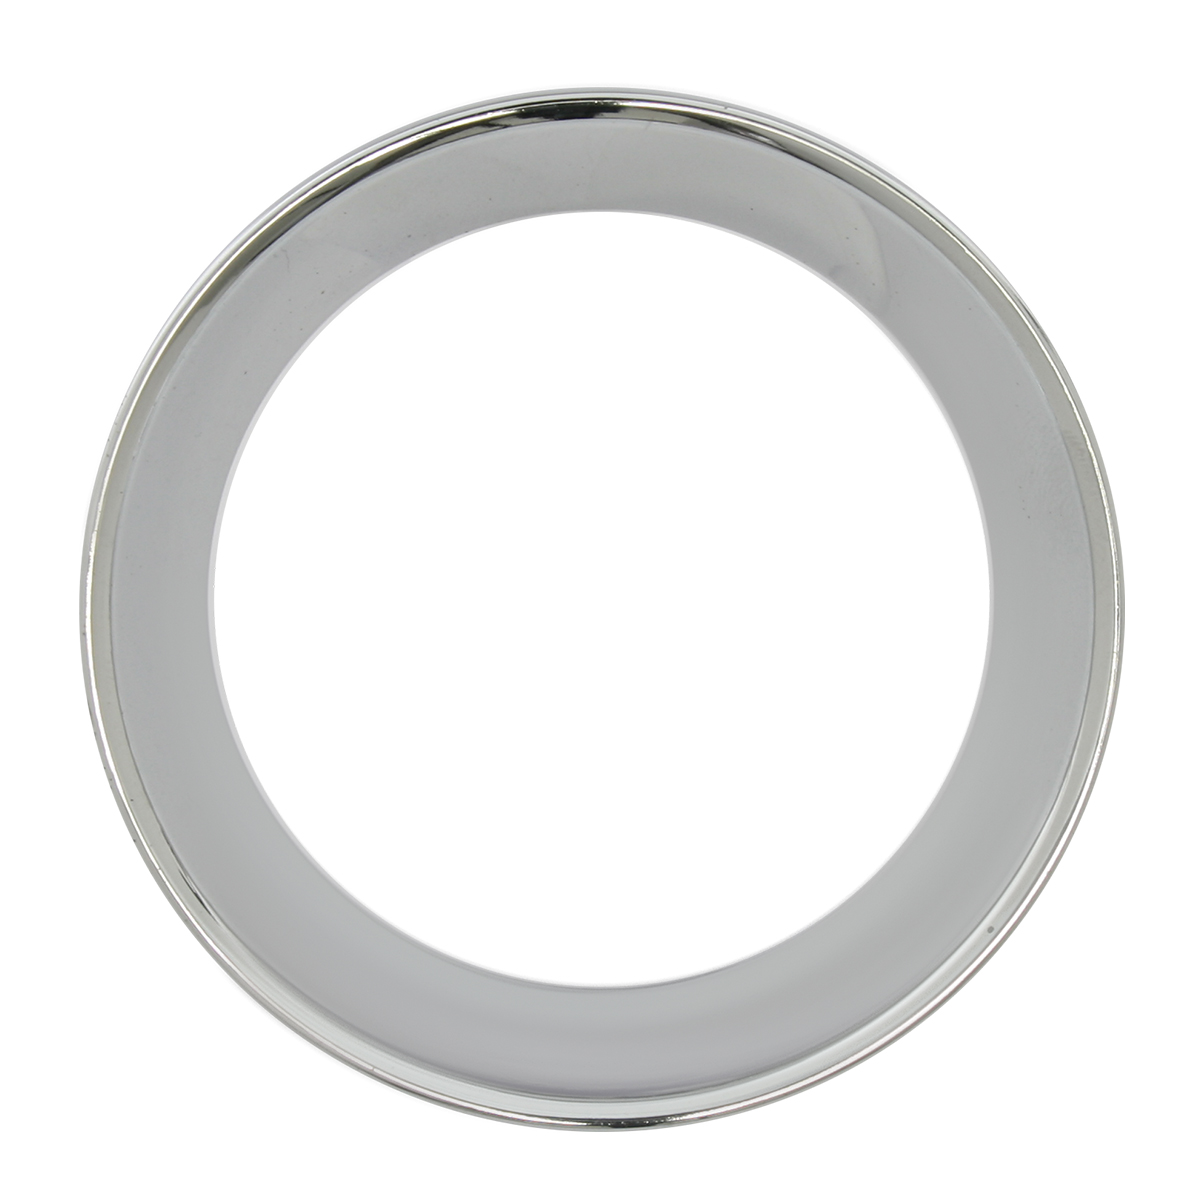 66945 Chrome Plastic Small Gauge Cover for KW